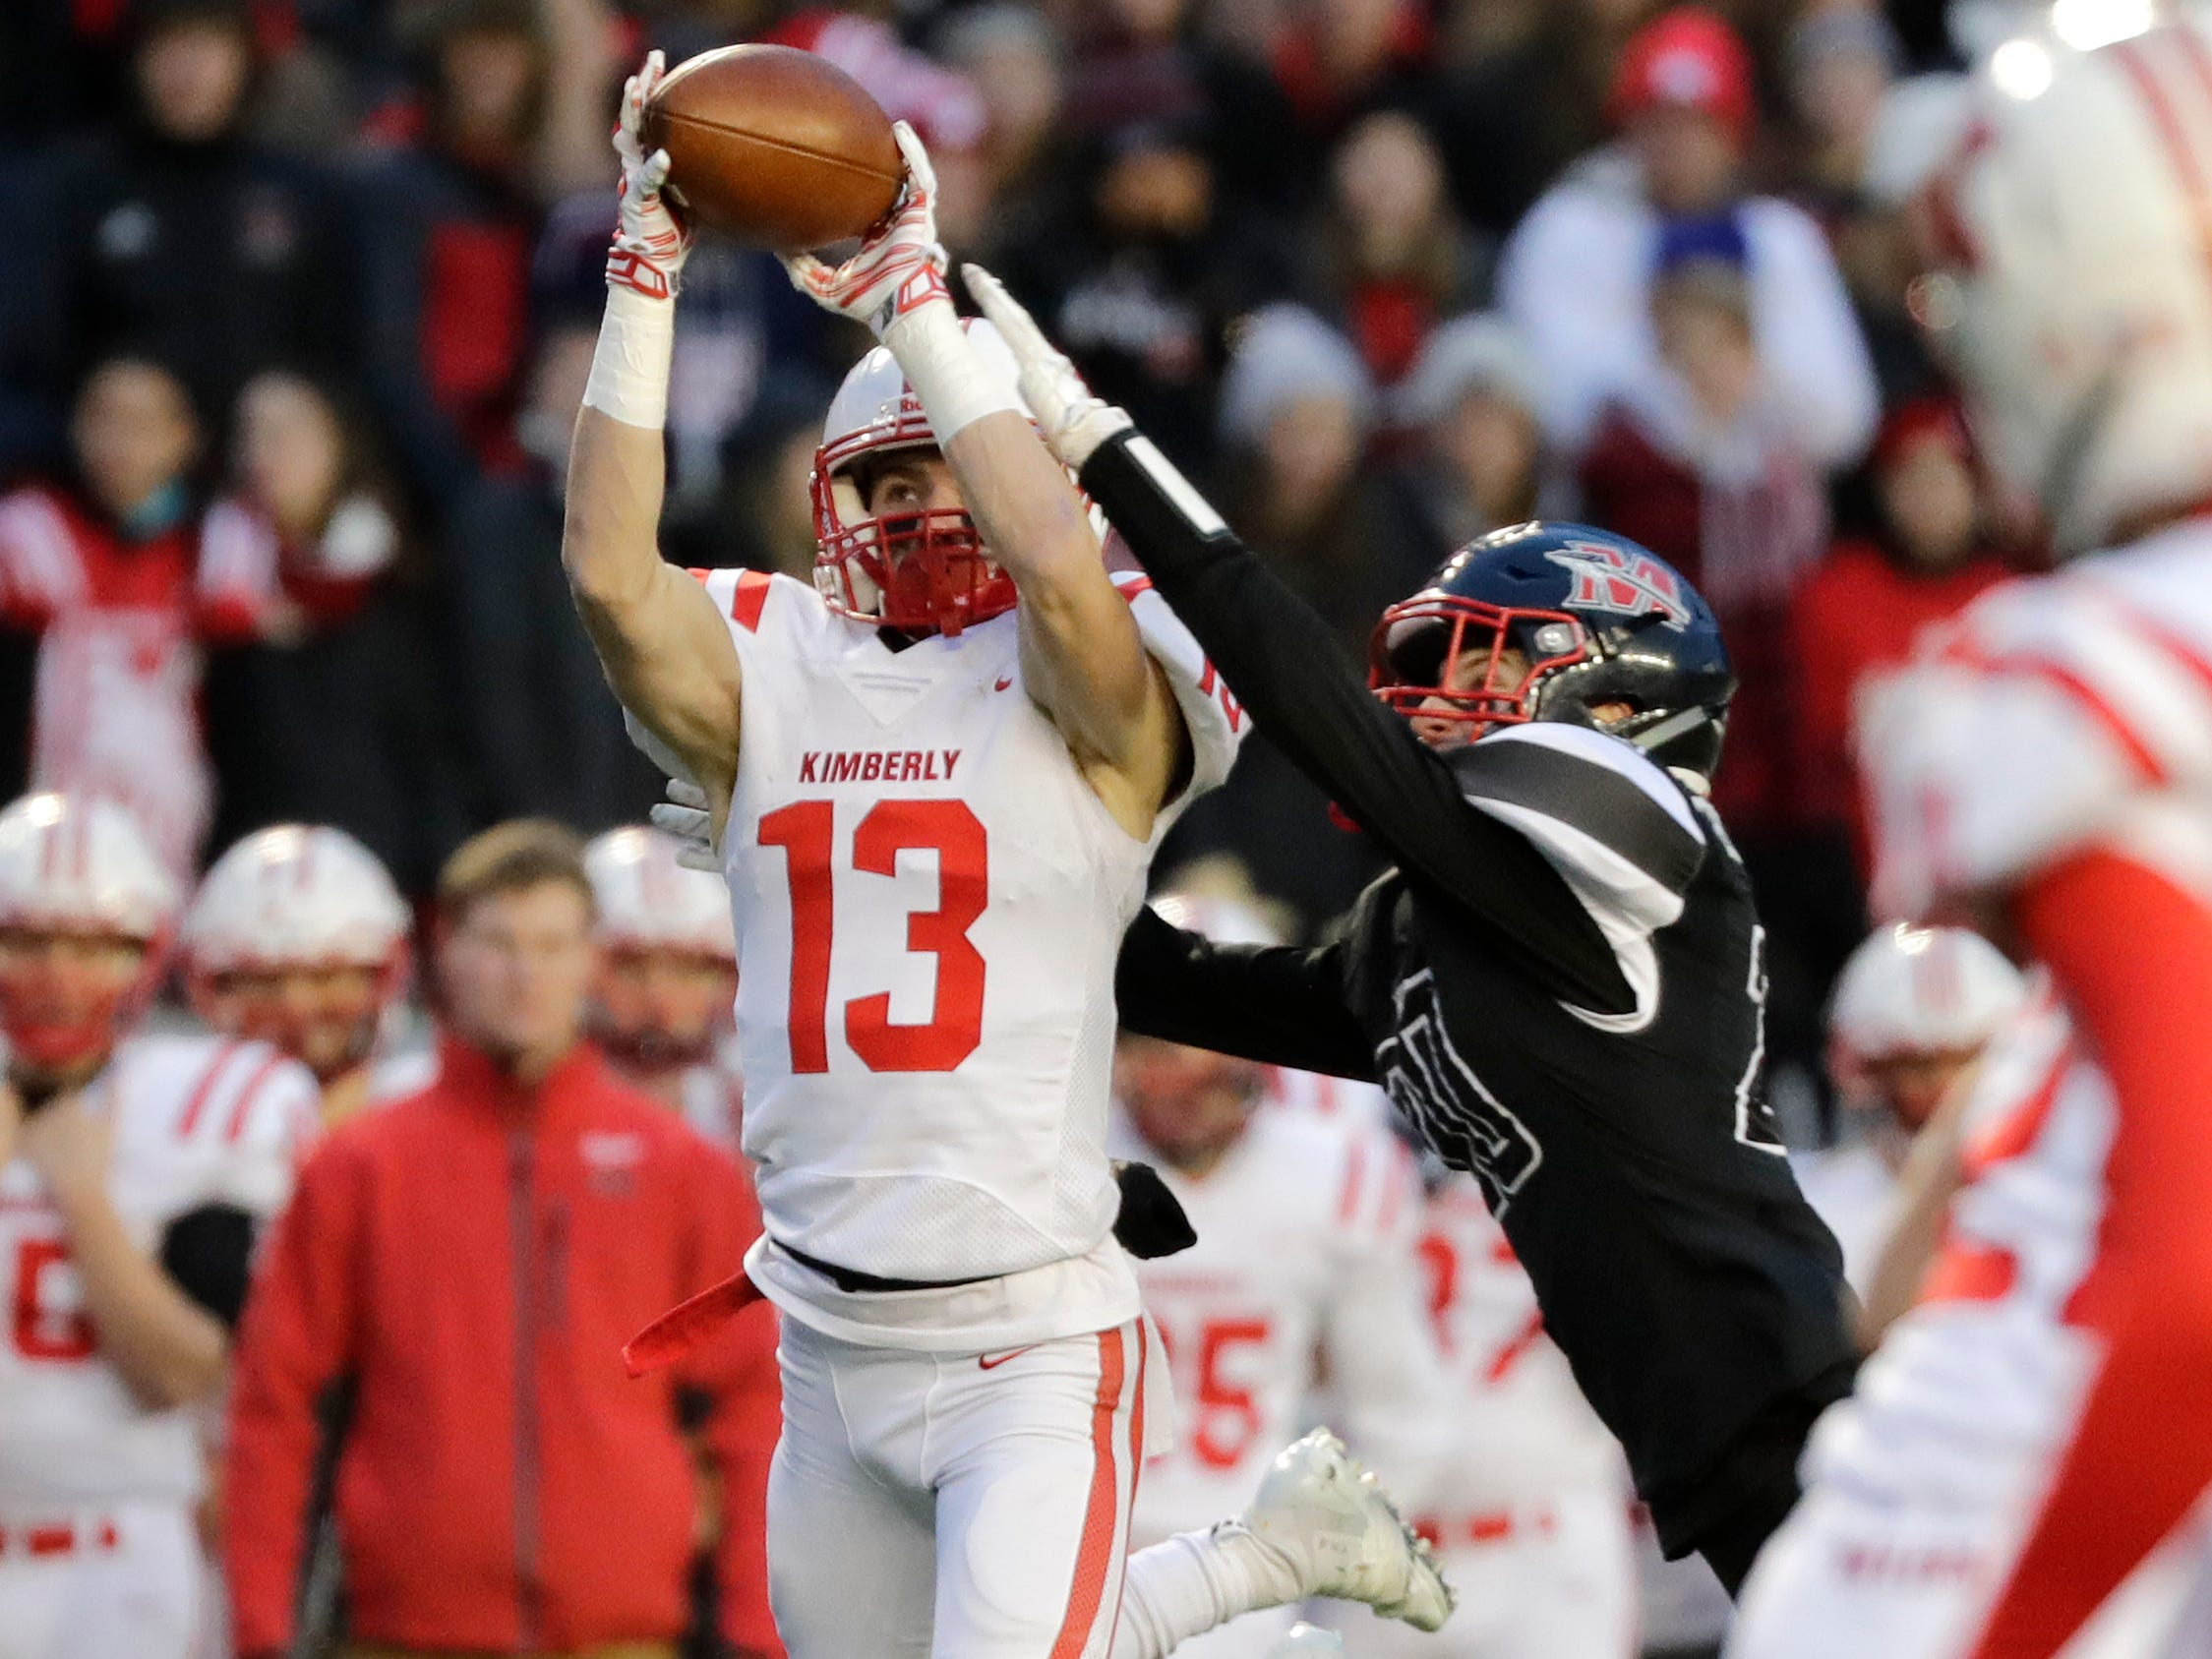 Kimberly's Zach Lechnir (13) catches a pass against Muskego in the WIAA Division 1 championship game at Camp Randall Stadium on Friday, November 16, 2018 in Madison, Wis.